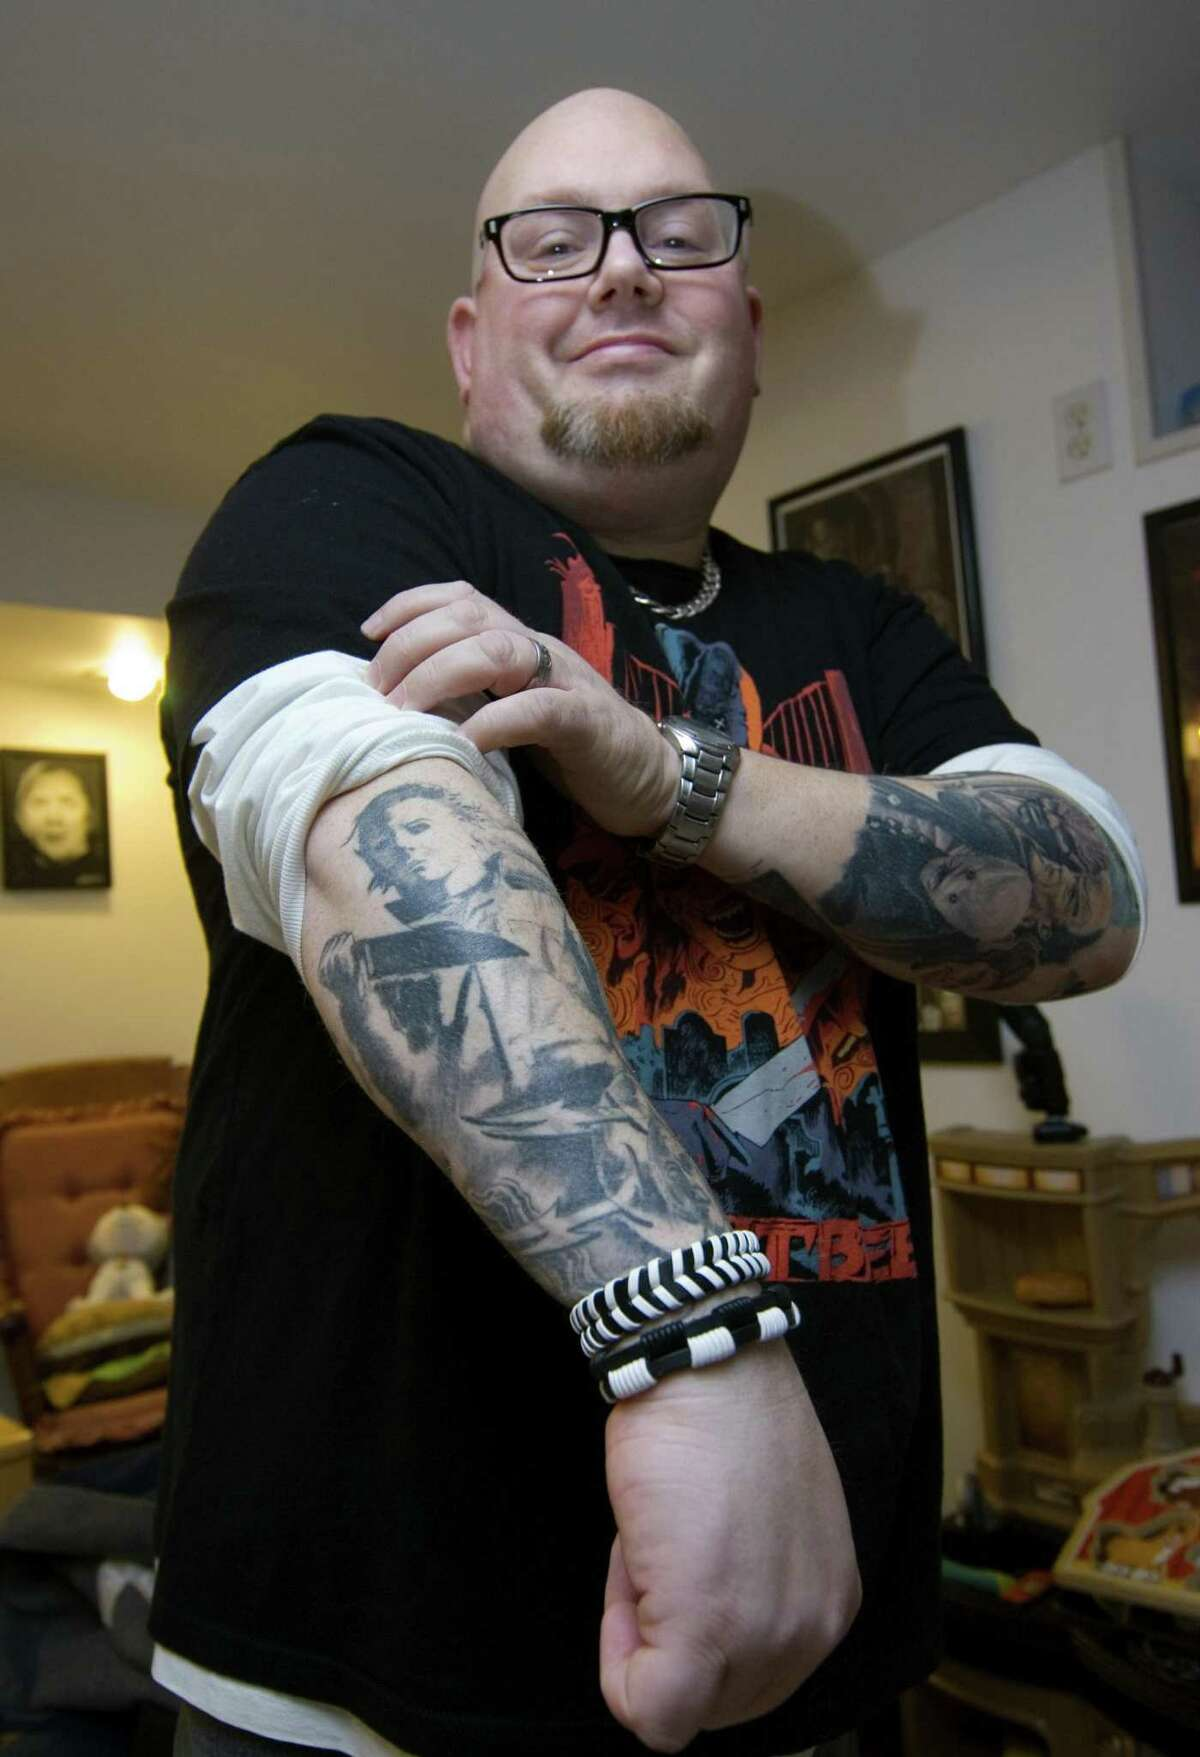 Horror film fan Larry Dwyer shows off one of his horror movie-themed tattoos at his home on Bradley Terrace in Derby on Tuesday.